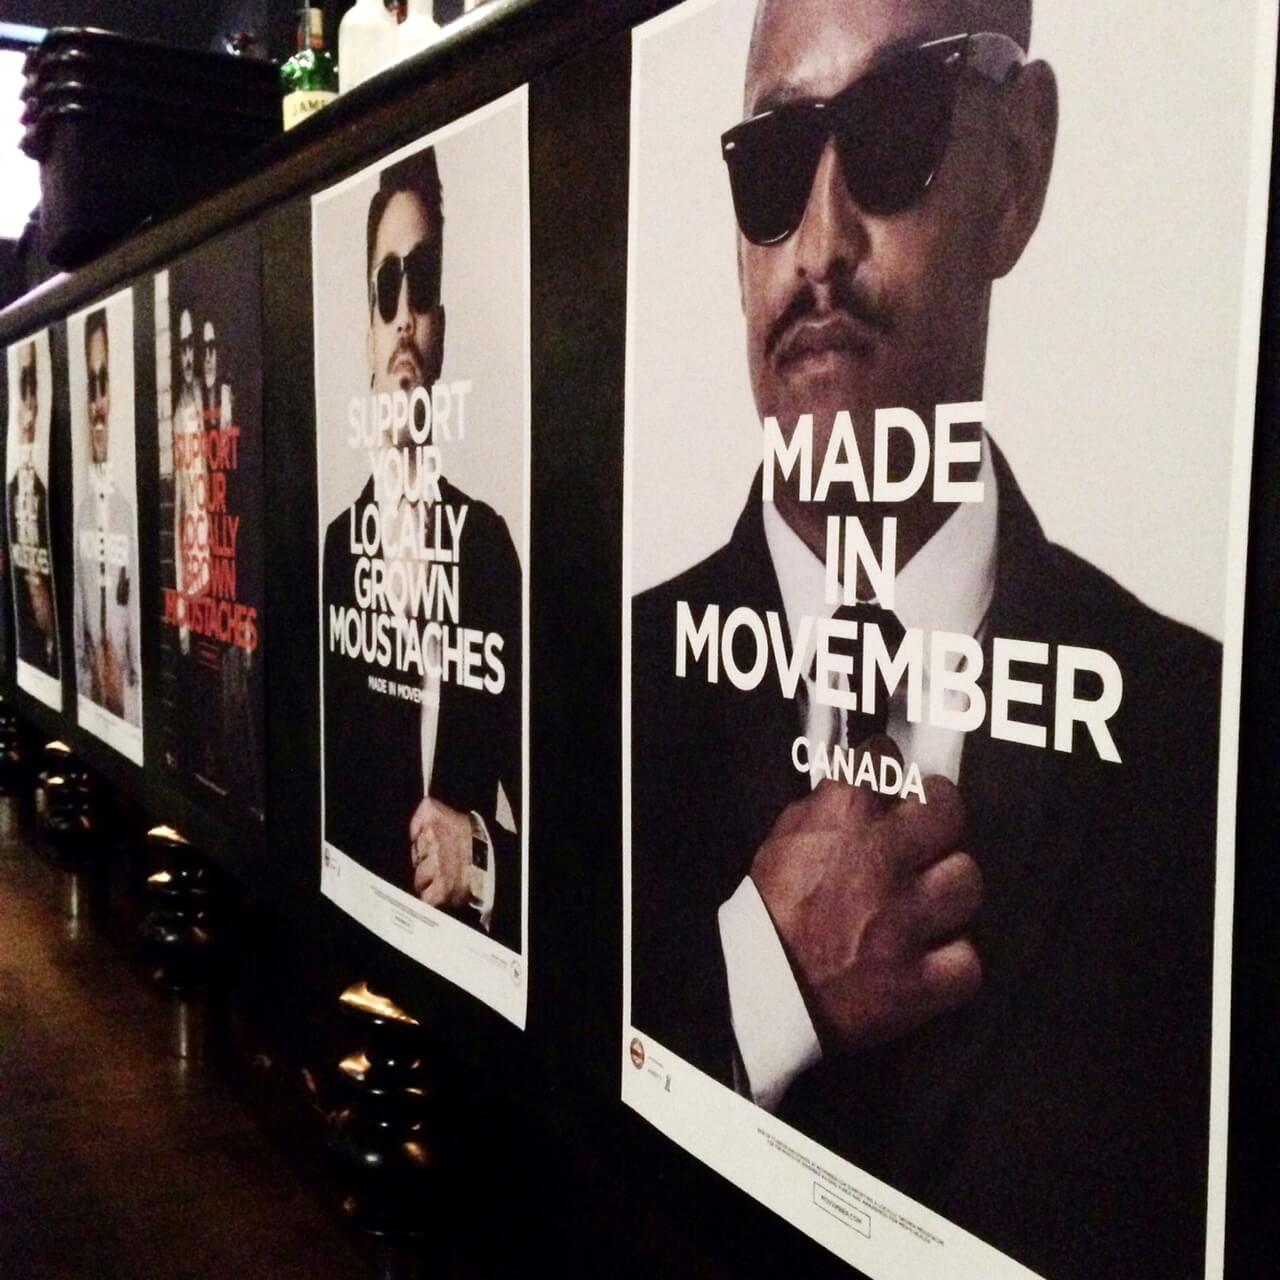 Movember posters in Toronto